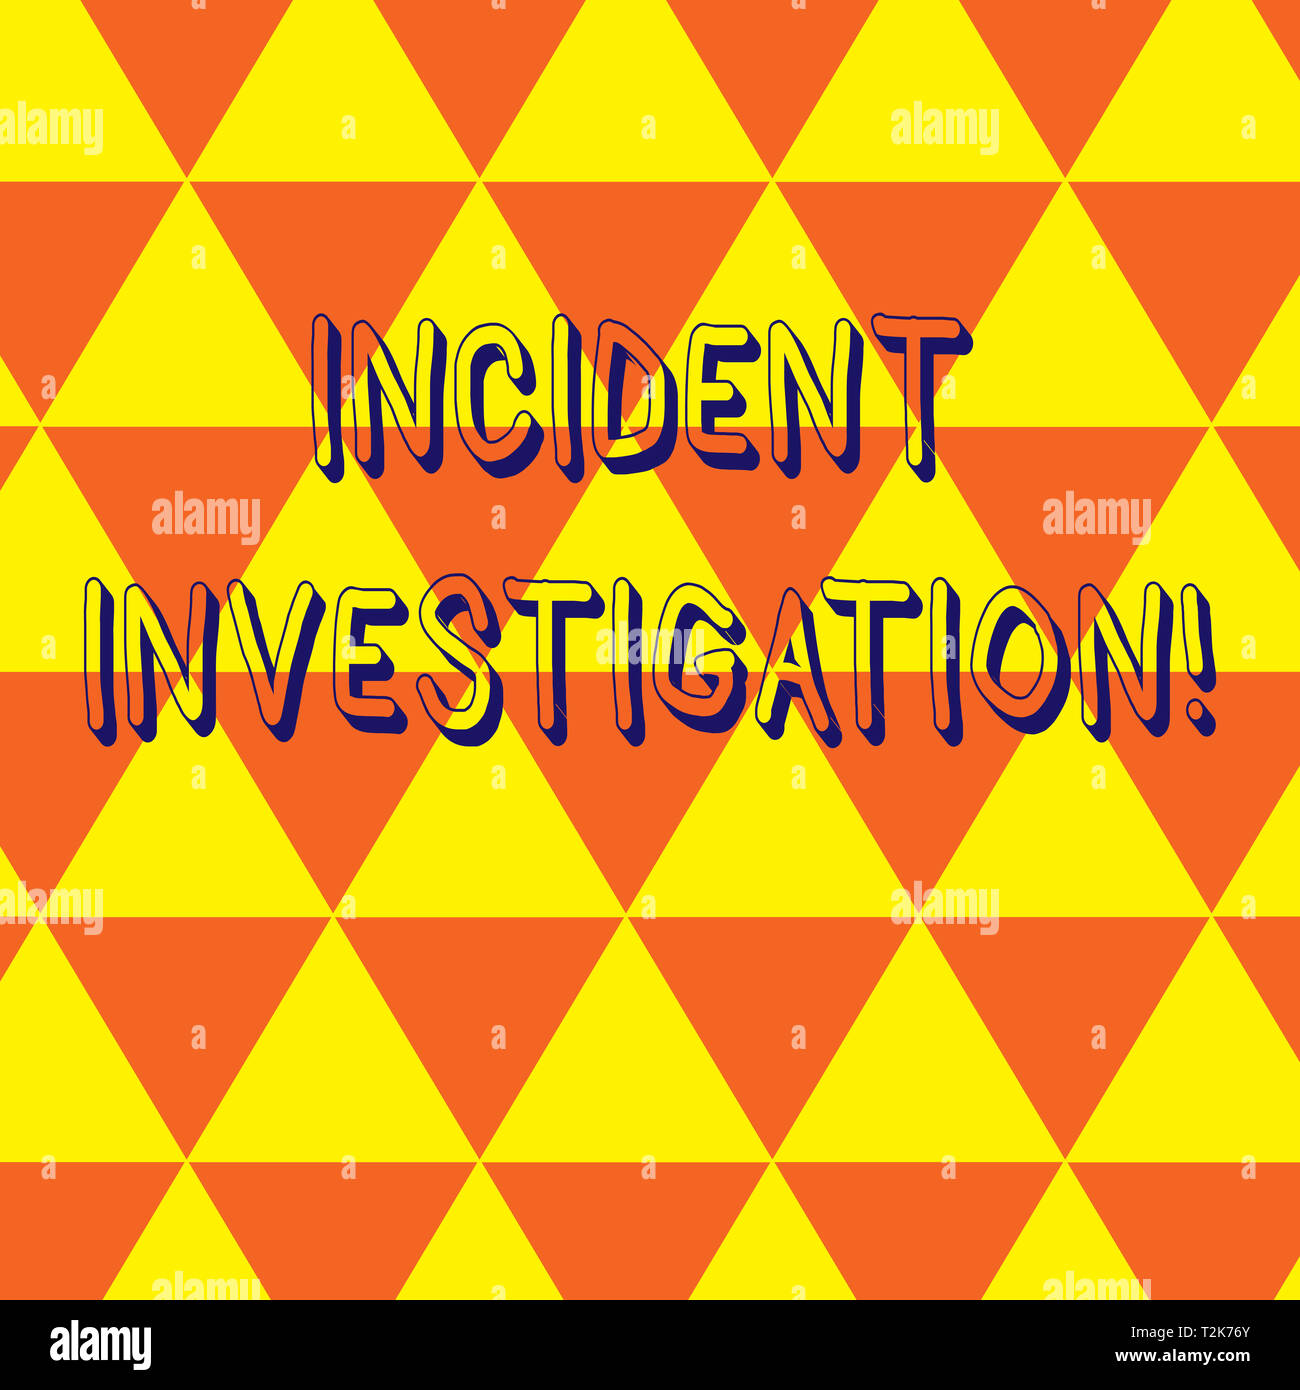 Writing note showing Incident Investigation. Business concept for Account and analysis of an incident based on evidence Repeat Triangle Tiles Arranged - Stock Image